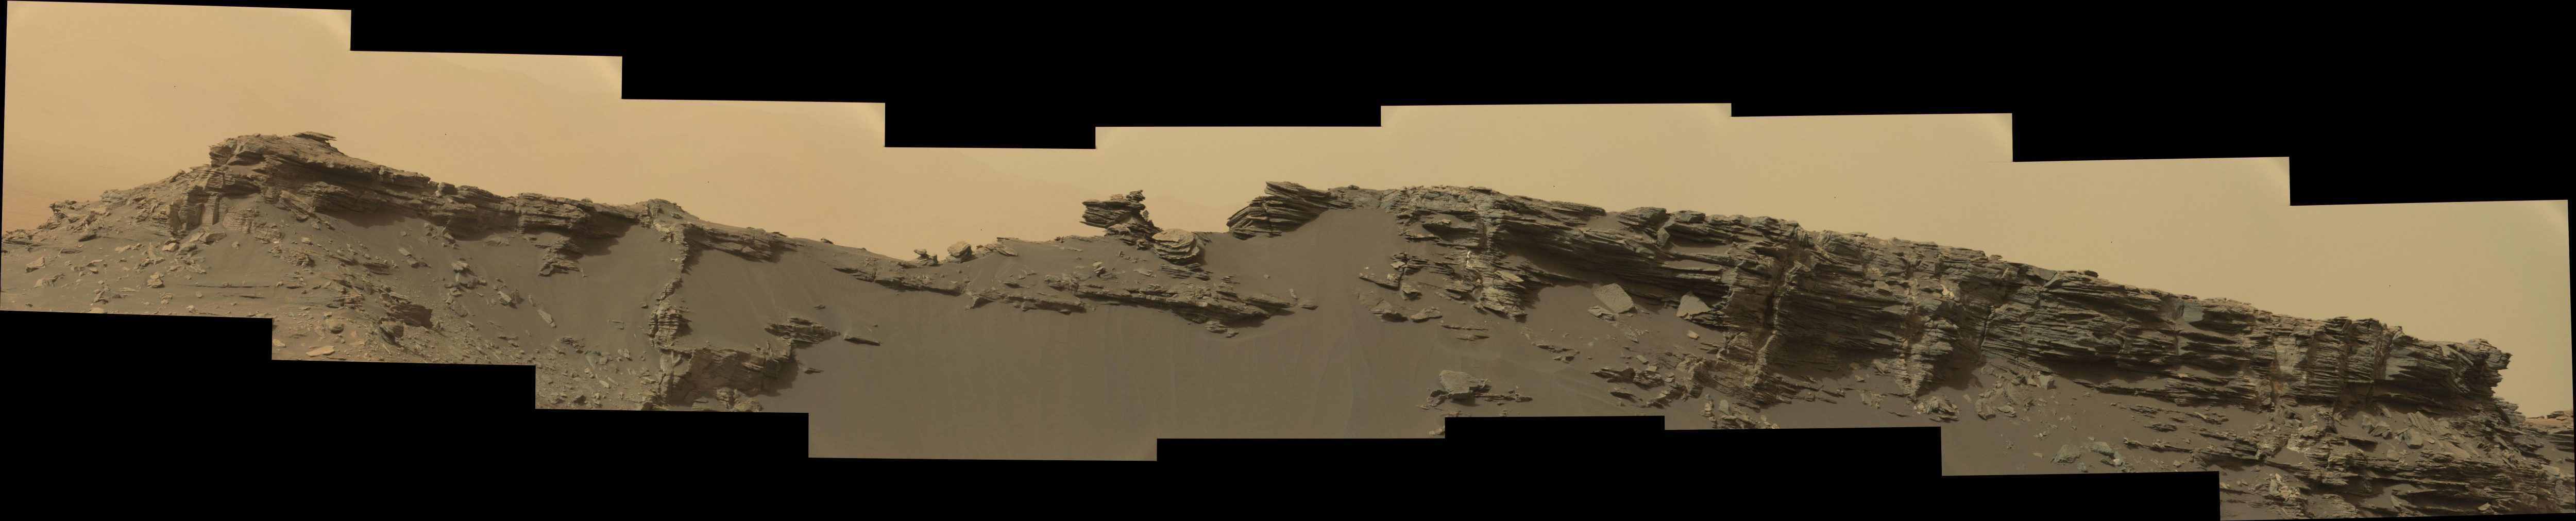 panoramic-curiosity-rover-view-2-sol-1450-was-life-on-mars